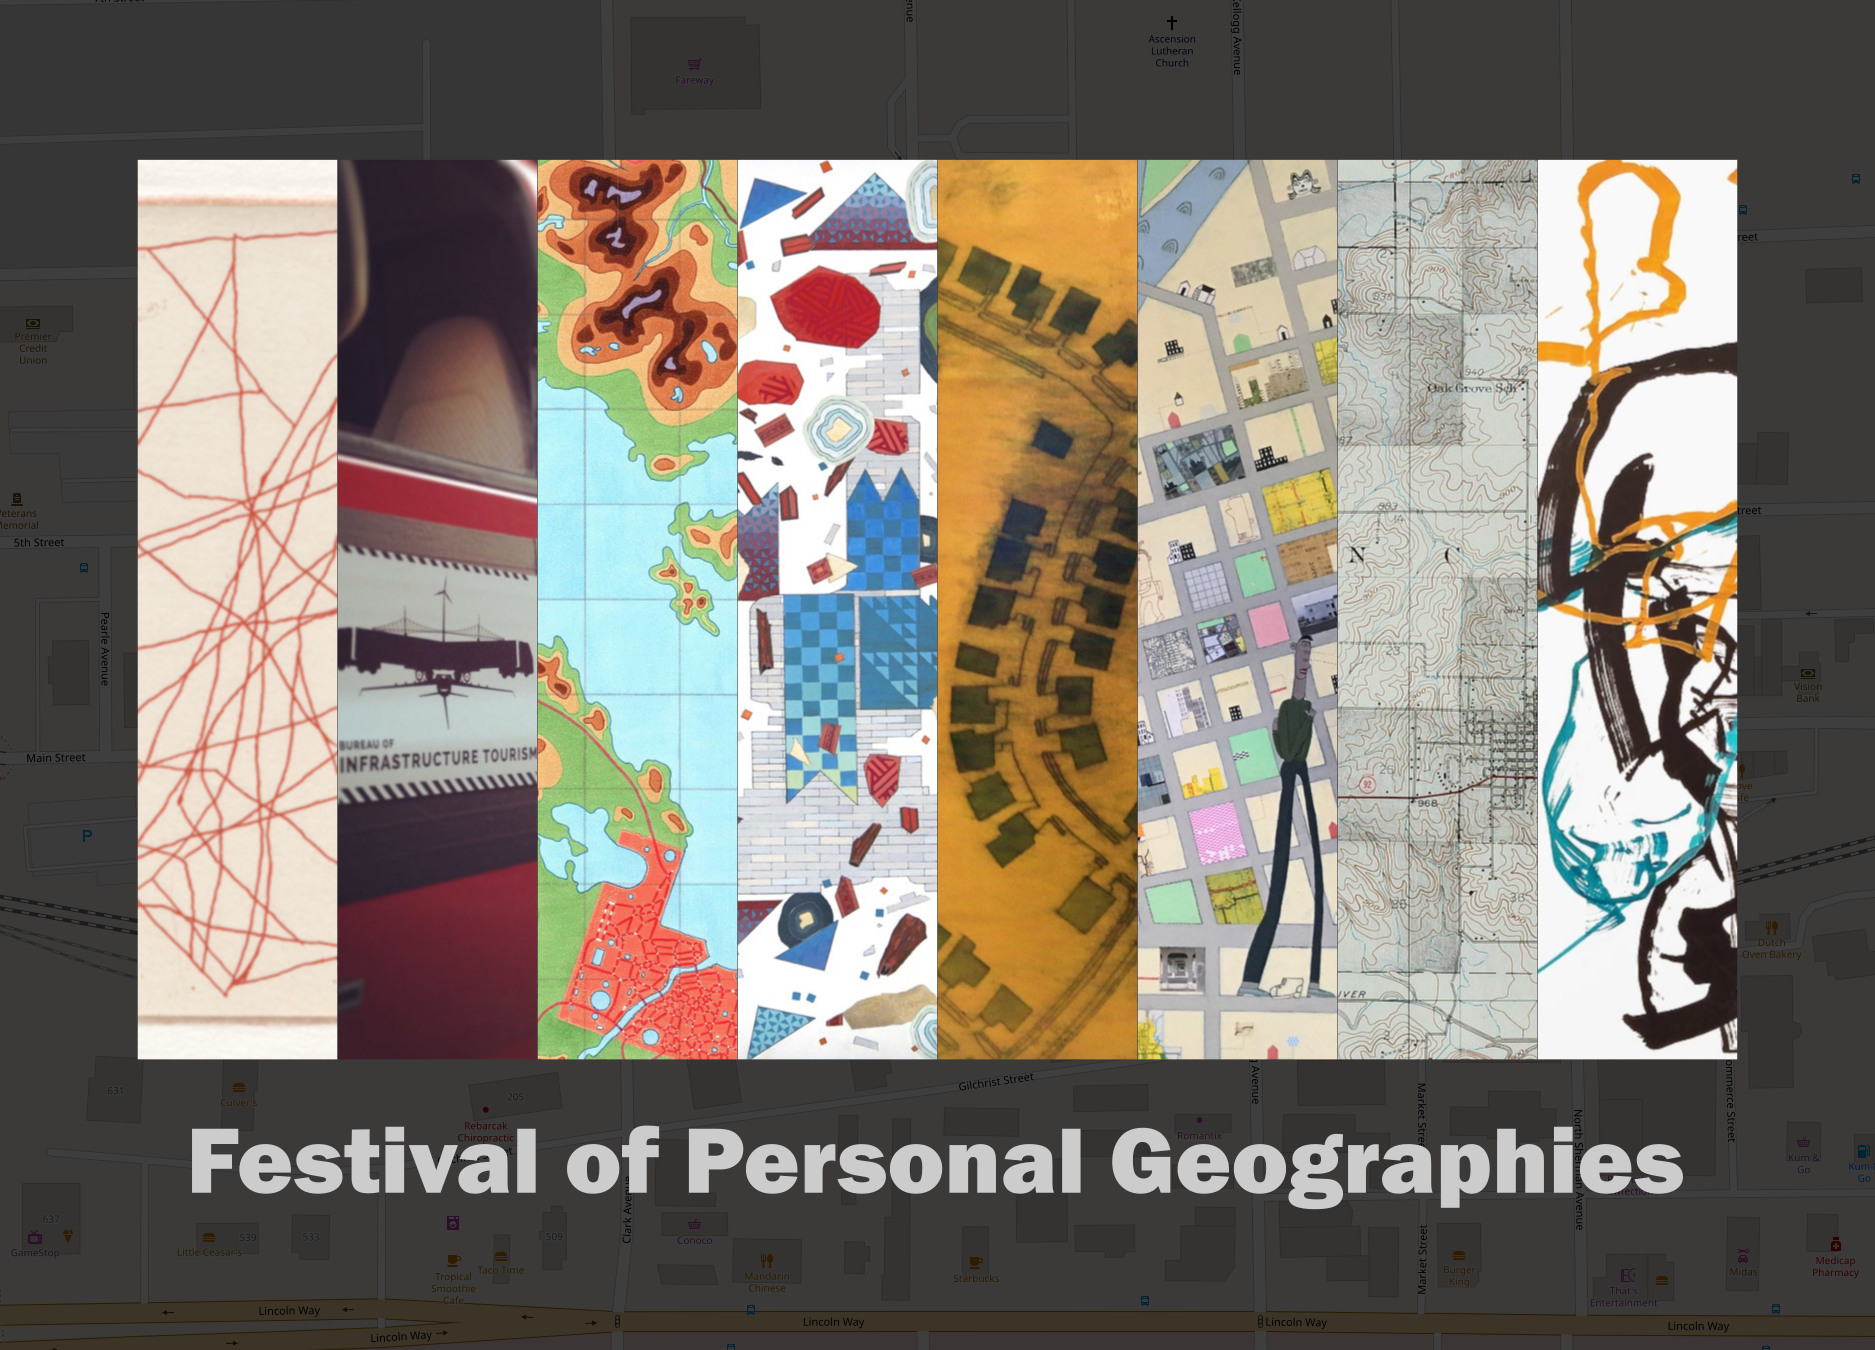 Festival of Personal Geographies